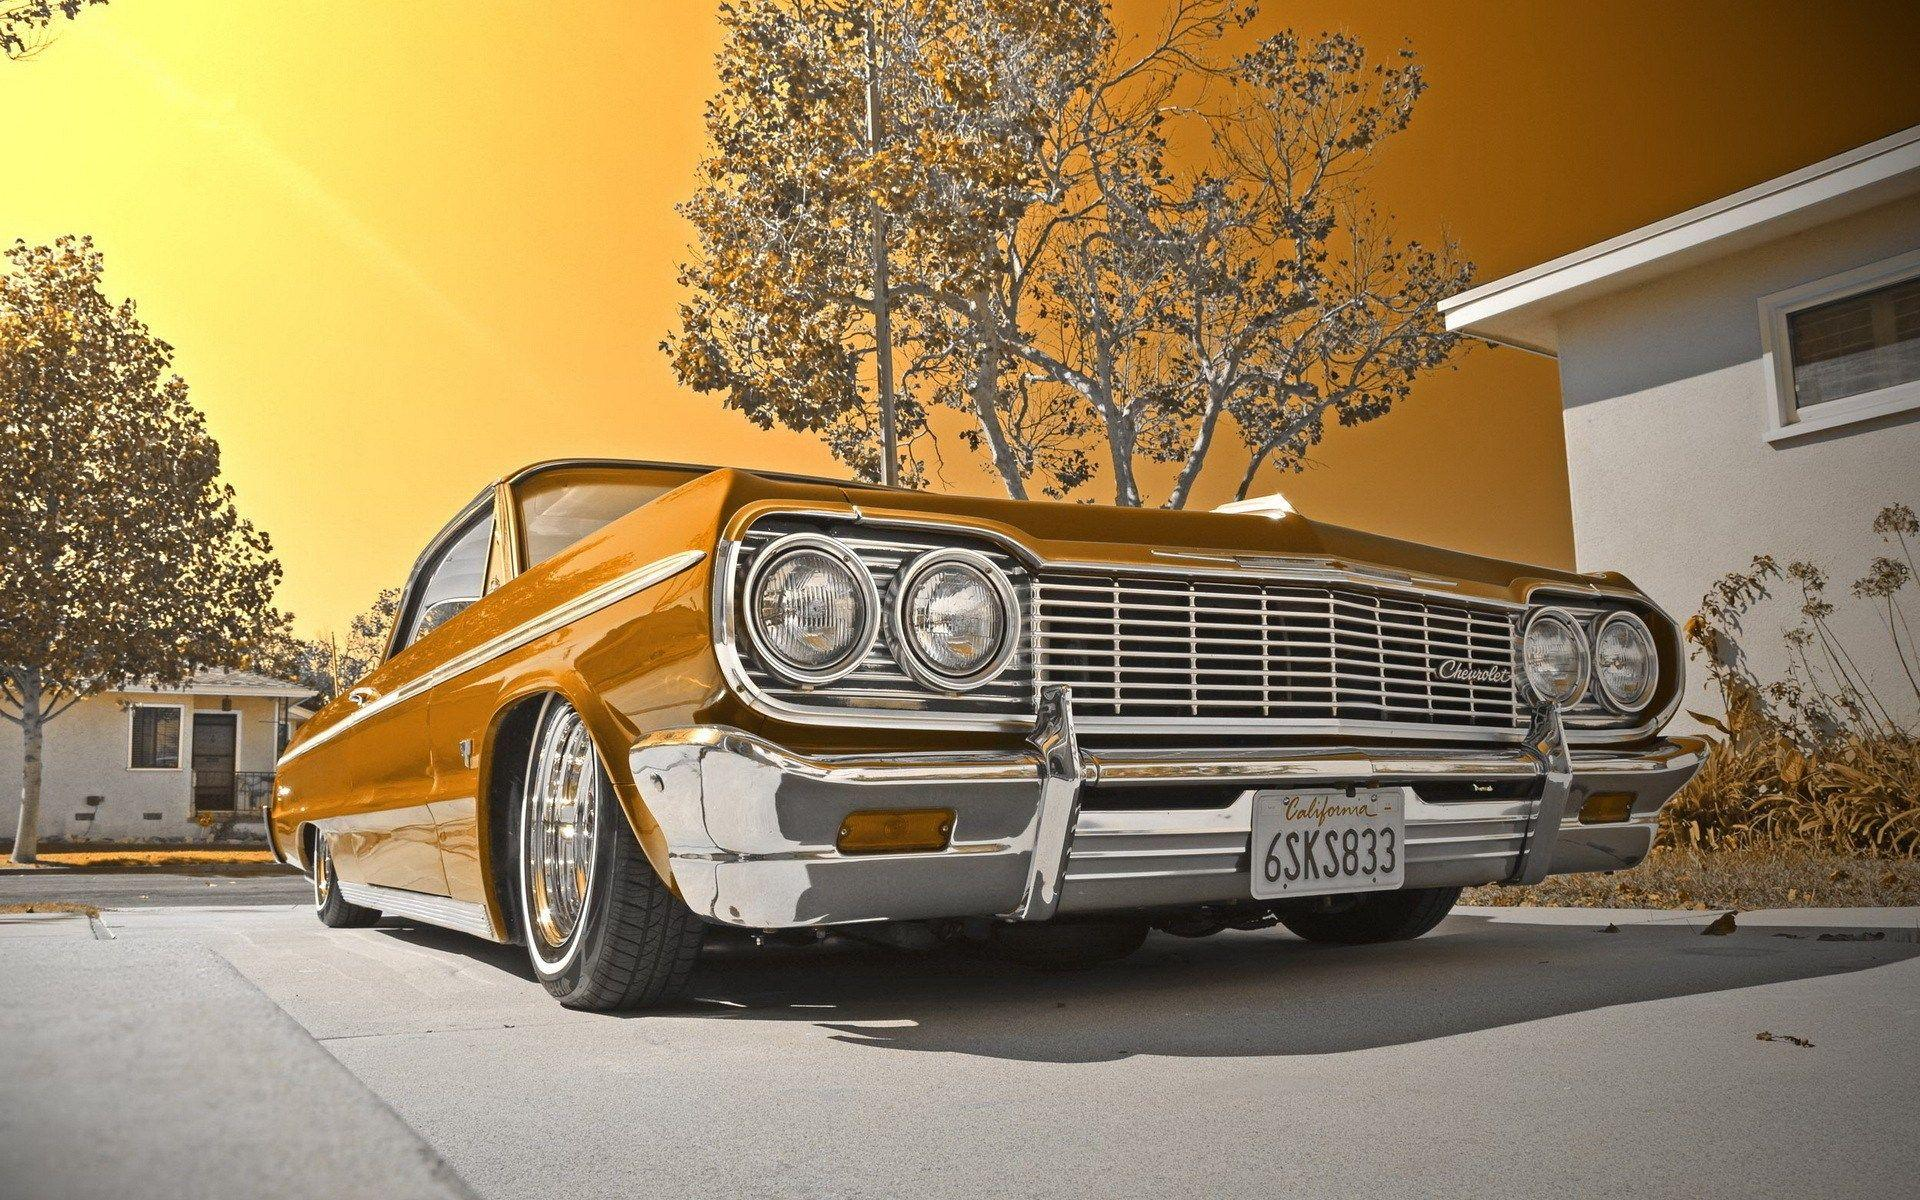 1964 Chevy Impala Wallpapers